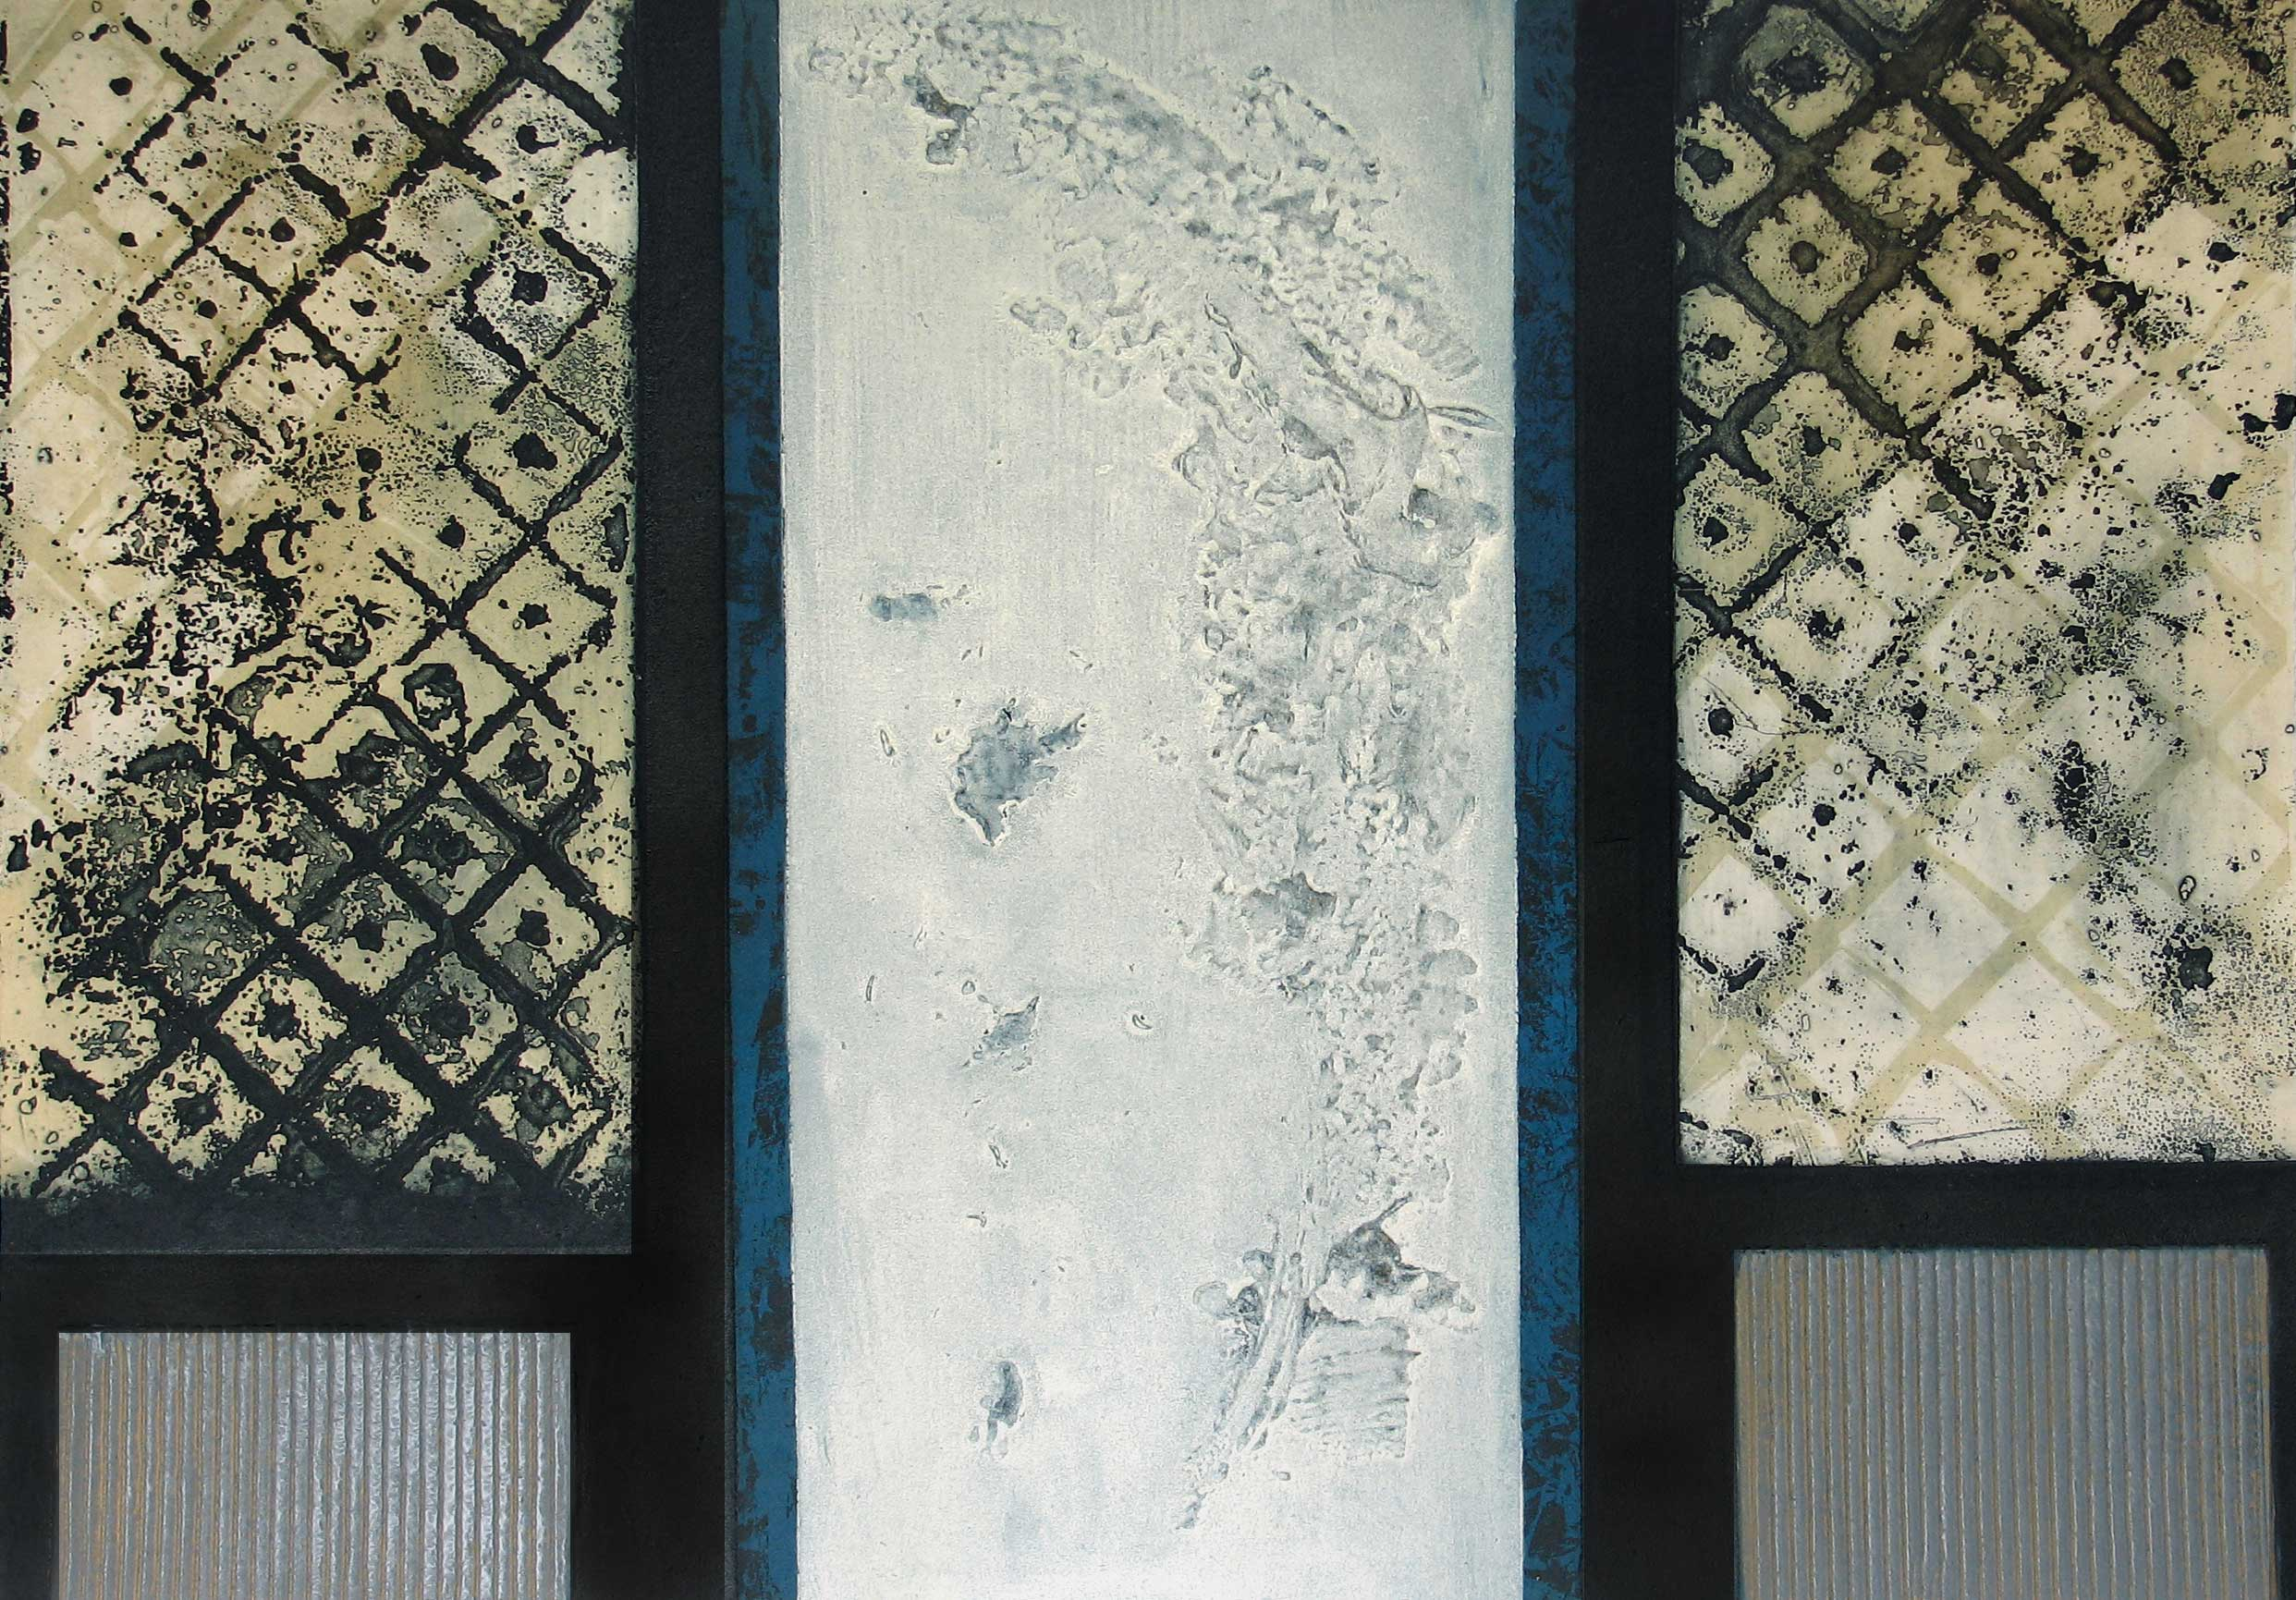 Apollo: photo-etched panels with carborundum print made by Stephen Vaughan